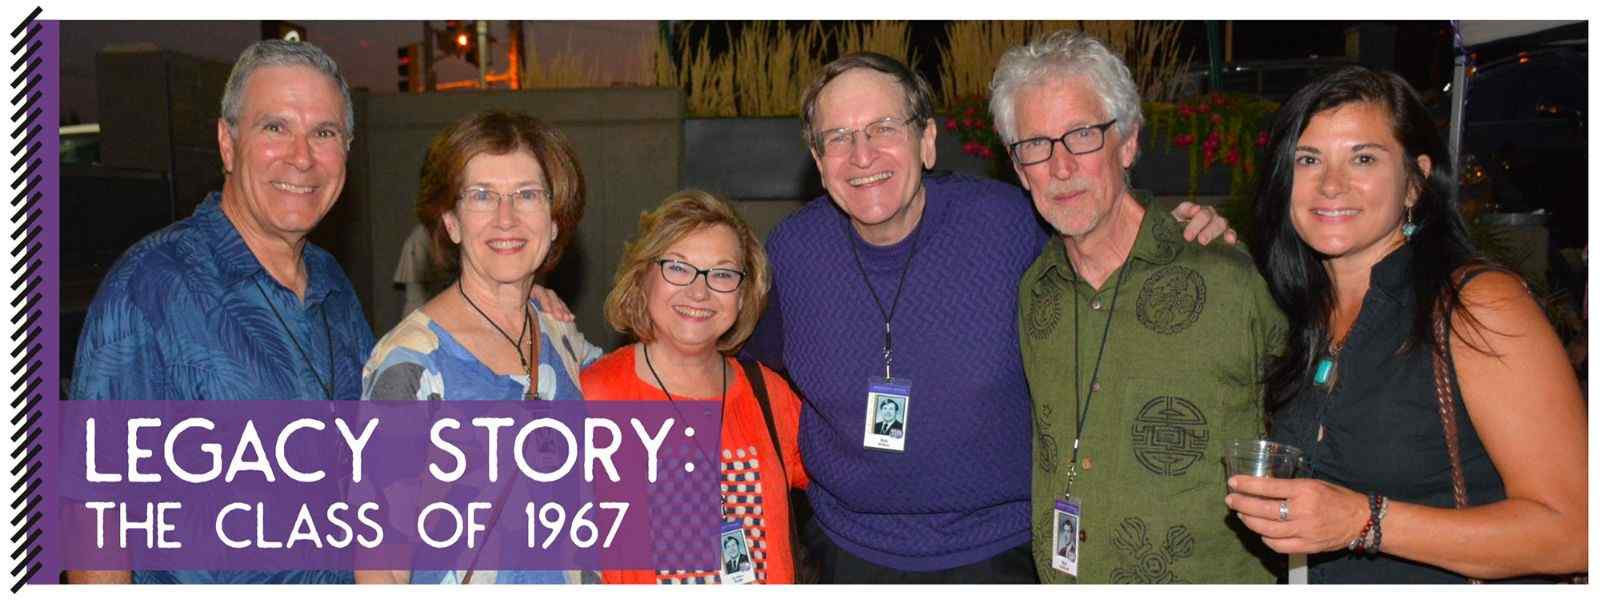 Legacy Story: Class of 1967